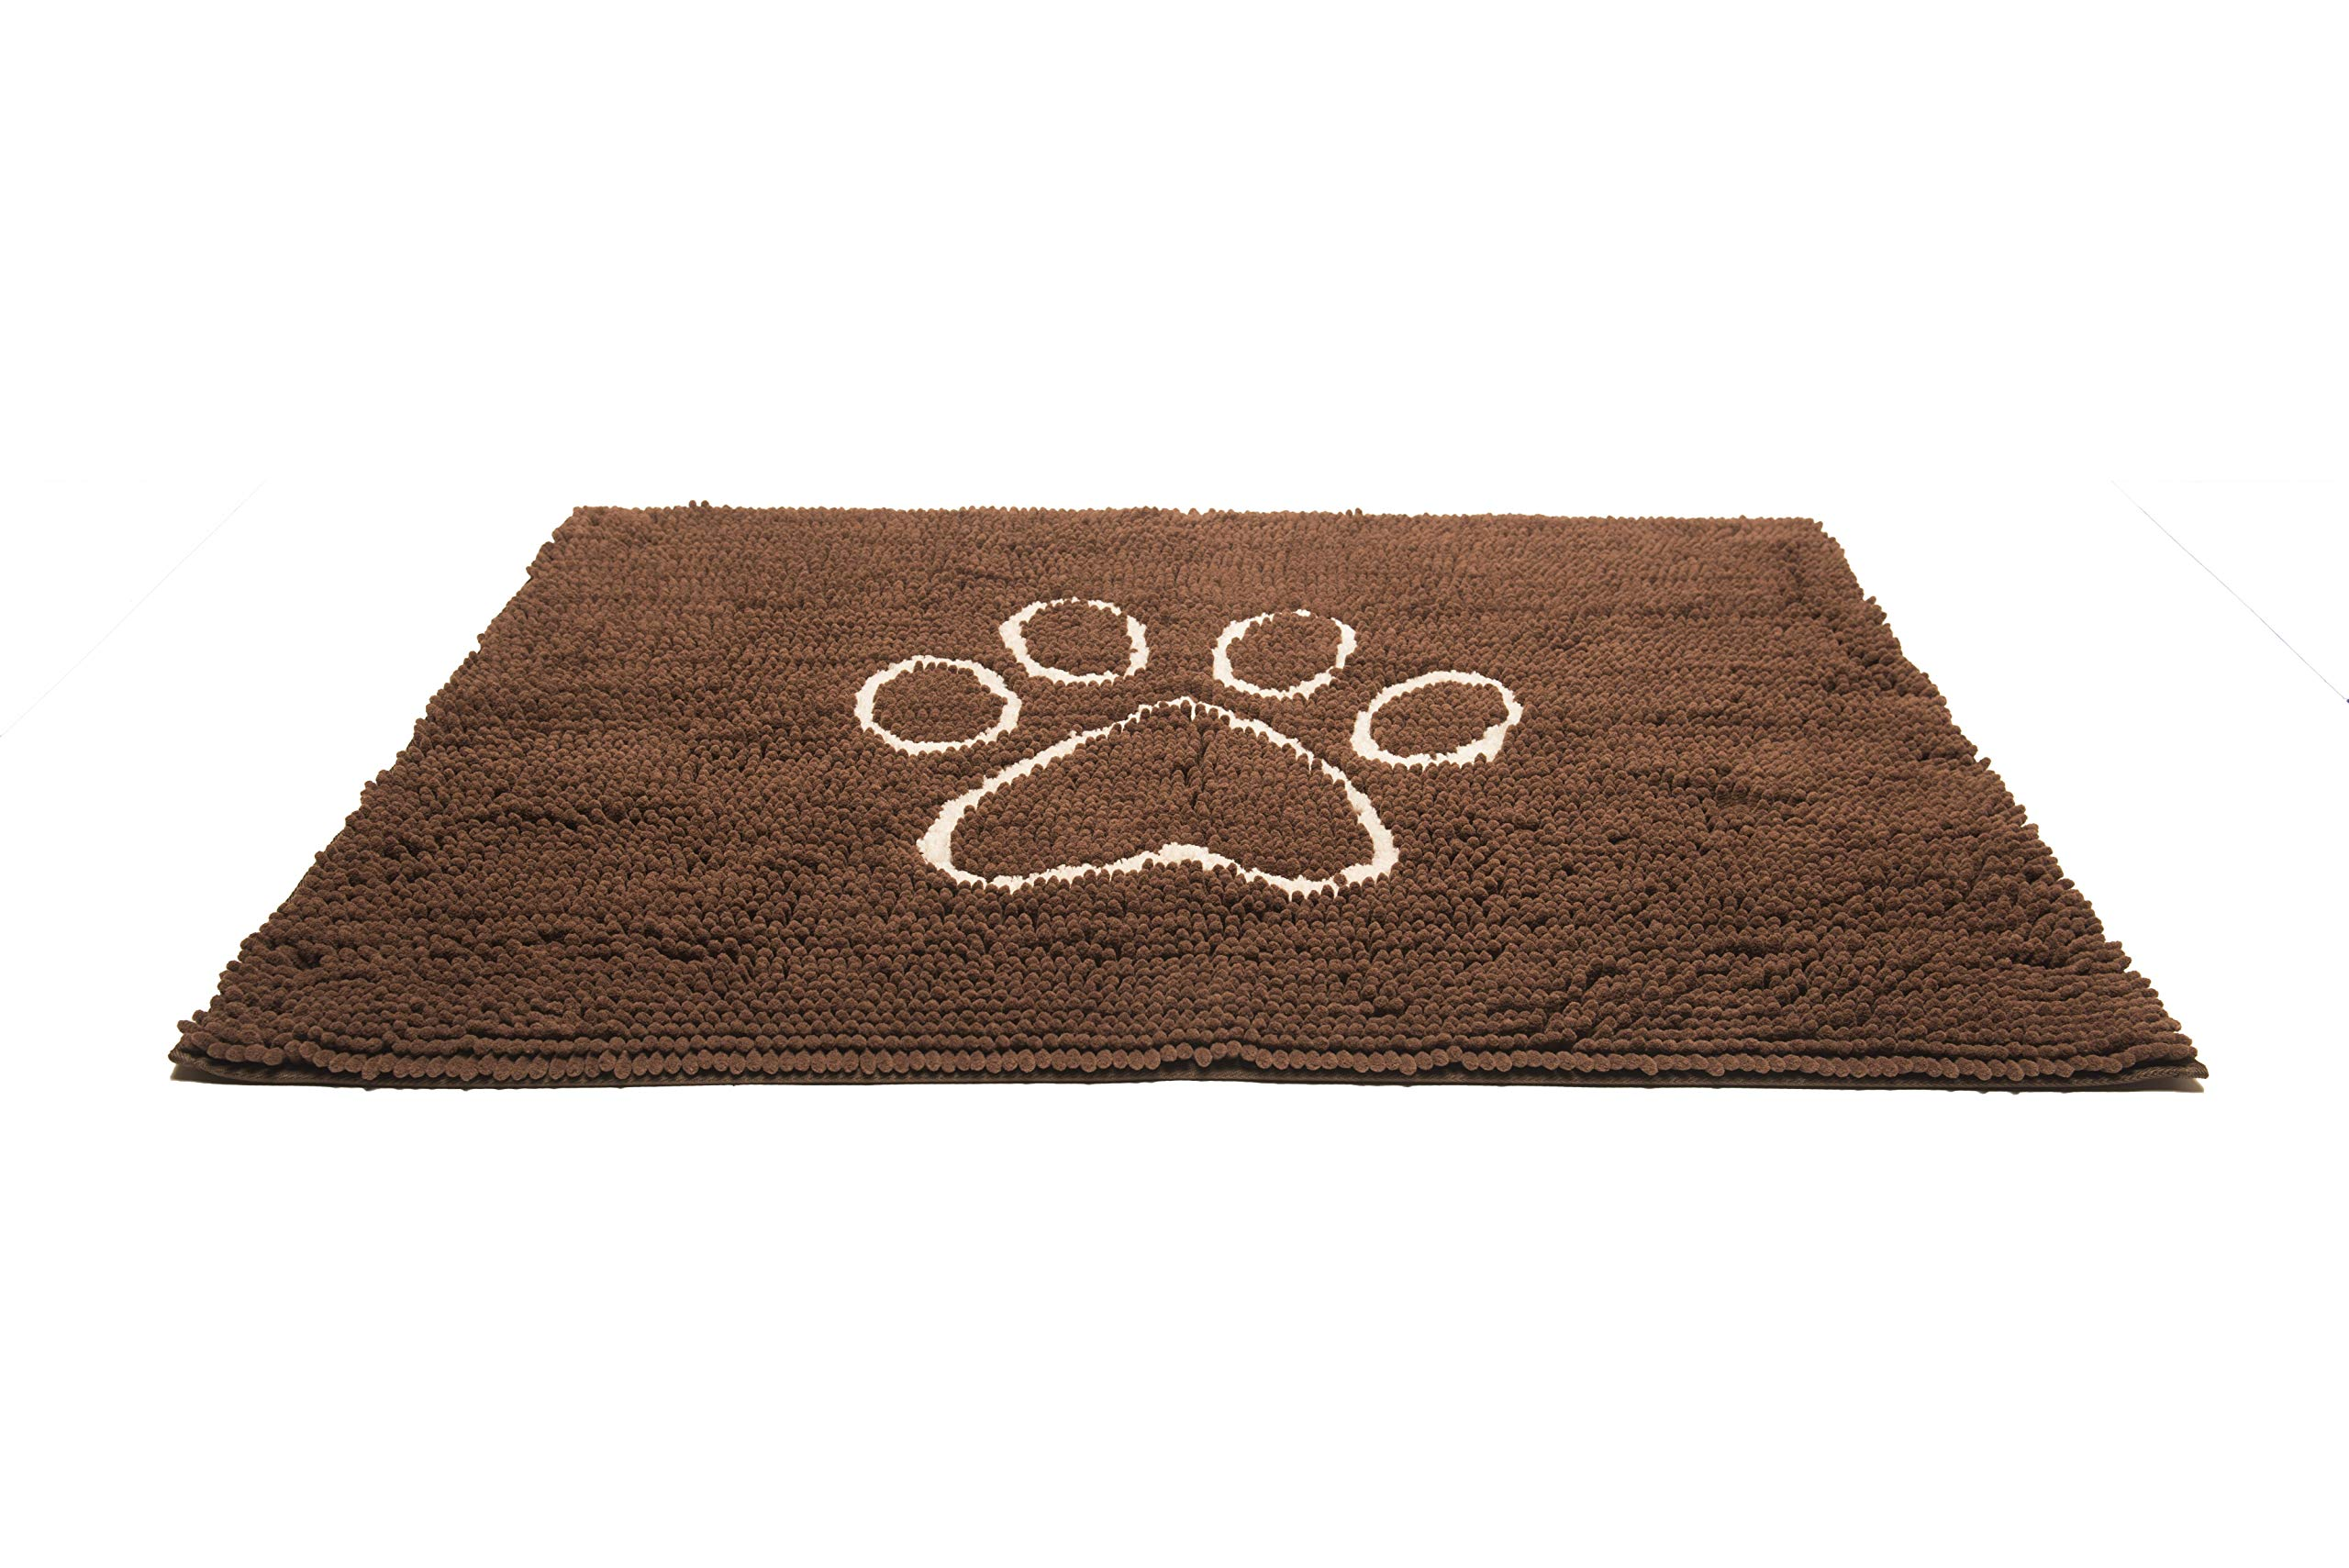 Dog Gone Smart Pet Products Dirty Dog Doormat Large Almond